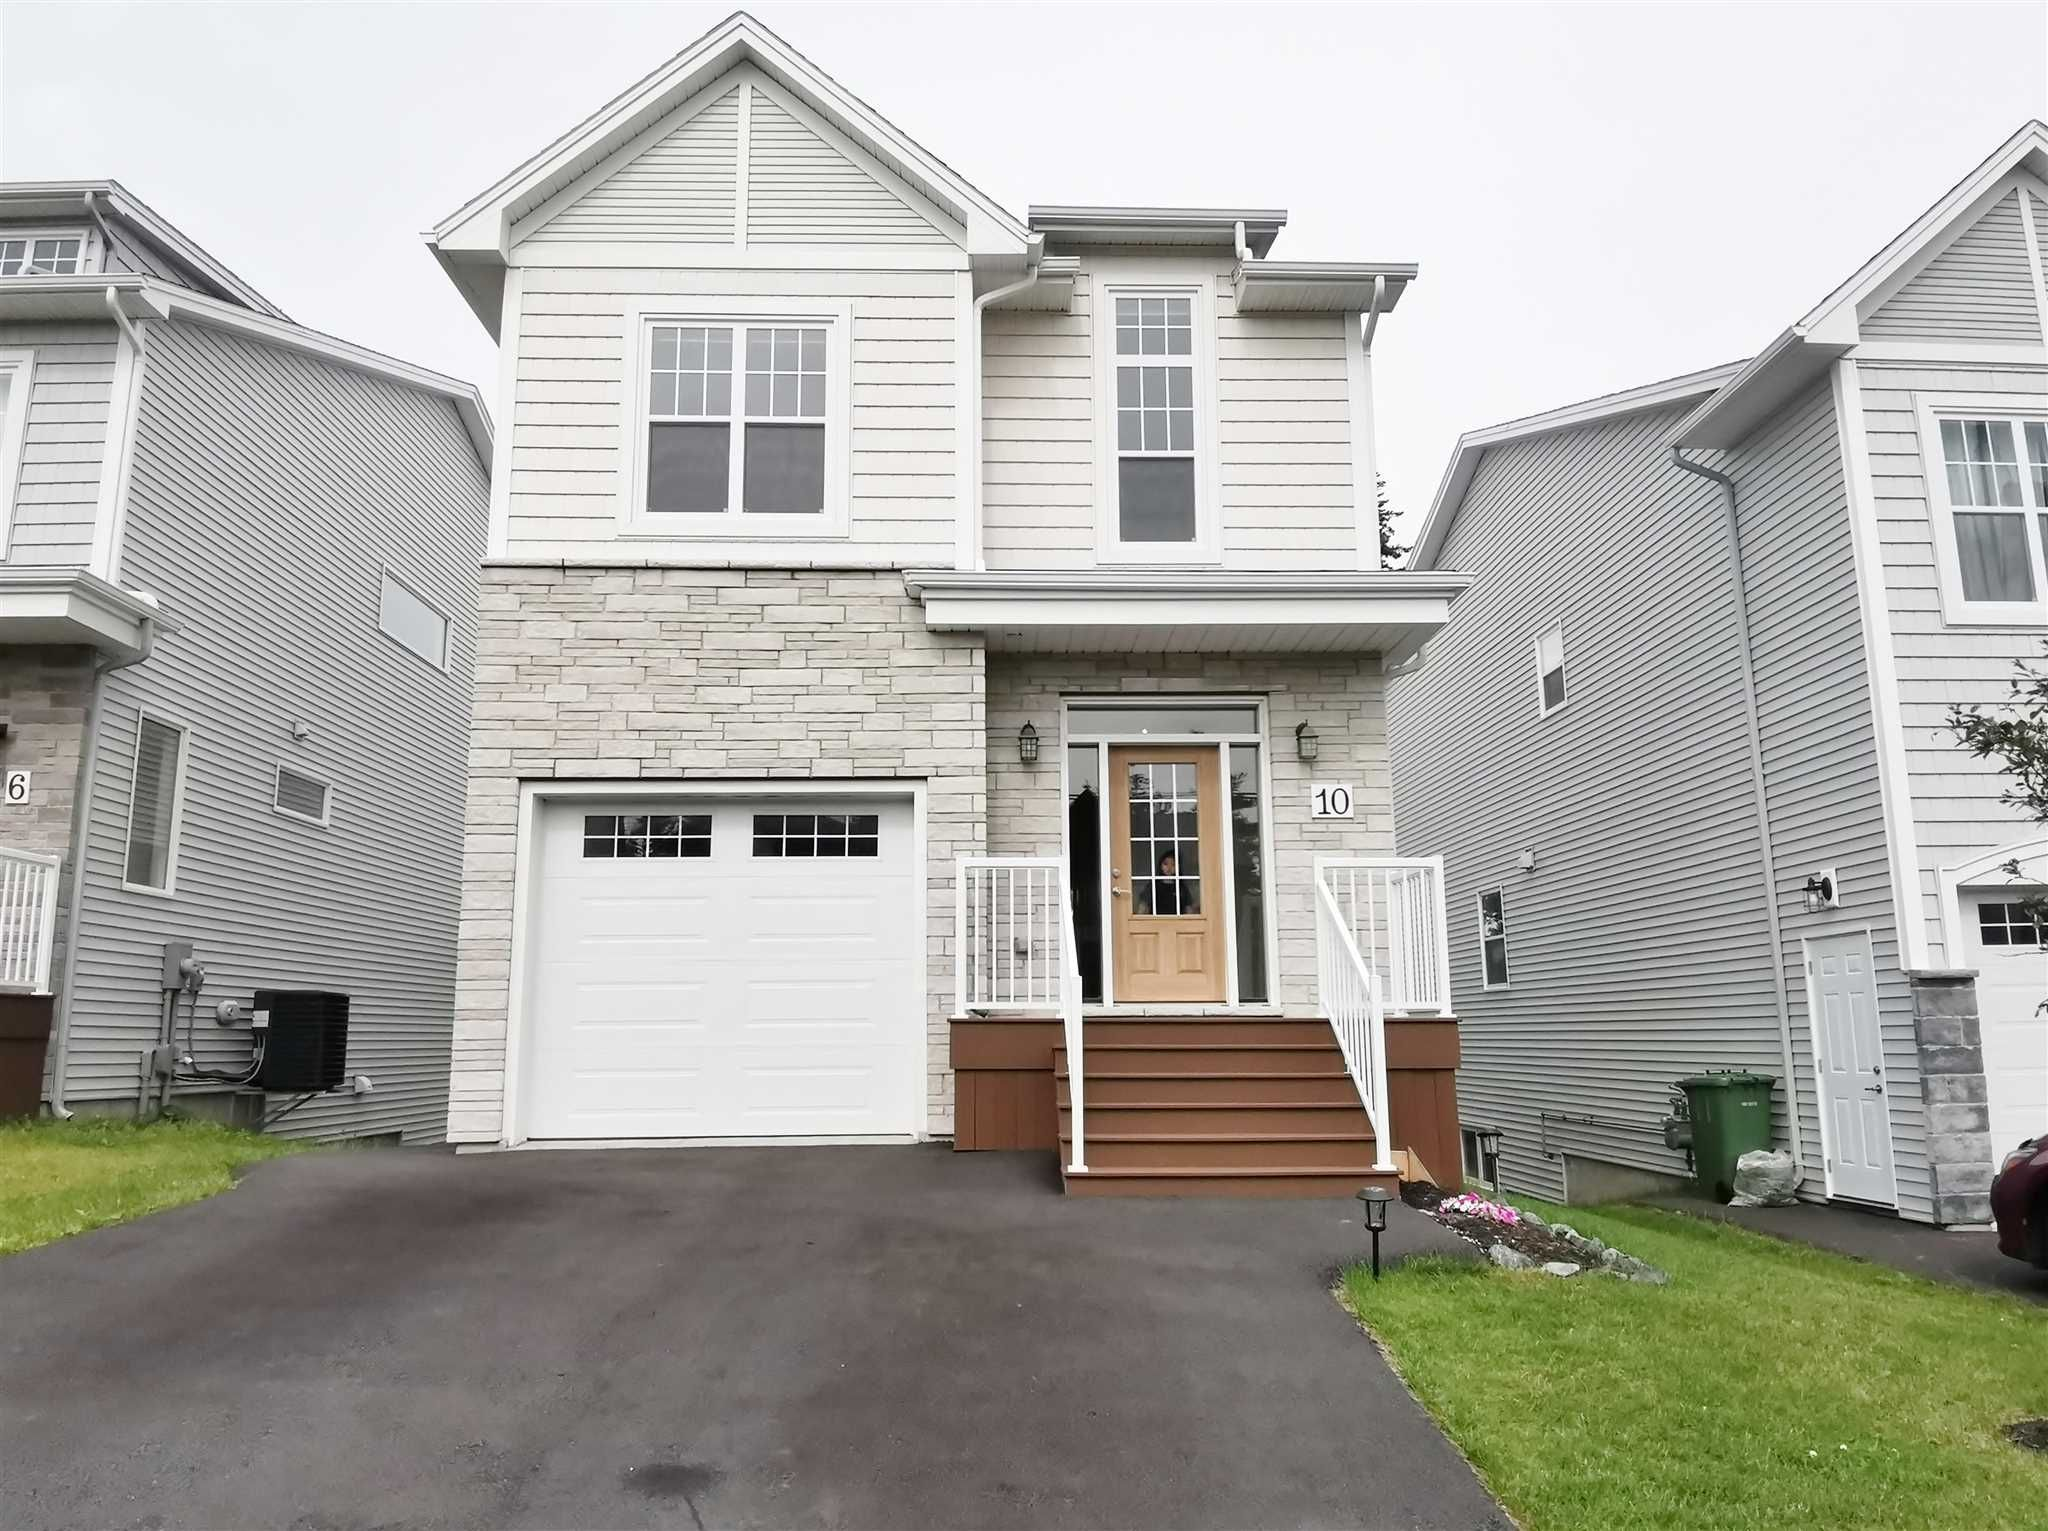 Main Photo: 10 Bristolton Avenue in Bedford: 20-Bedford Residential for sale (Halifax-Dartmouth)  : MLS®# 202117670